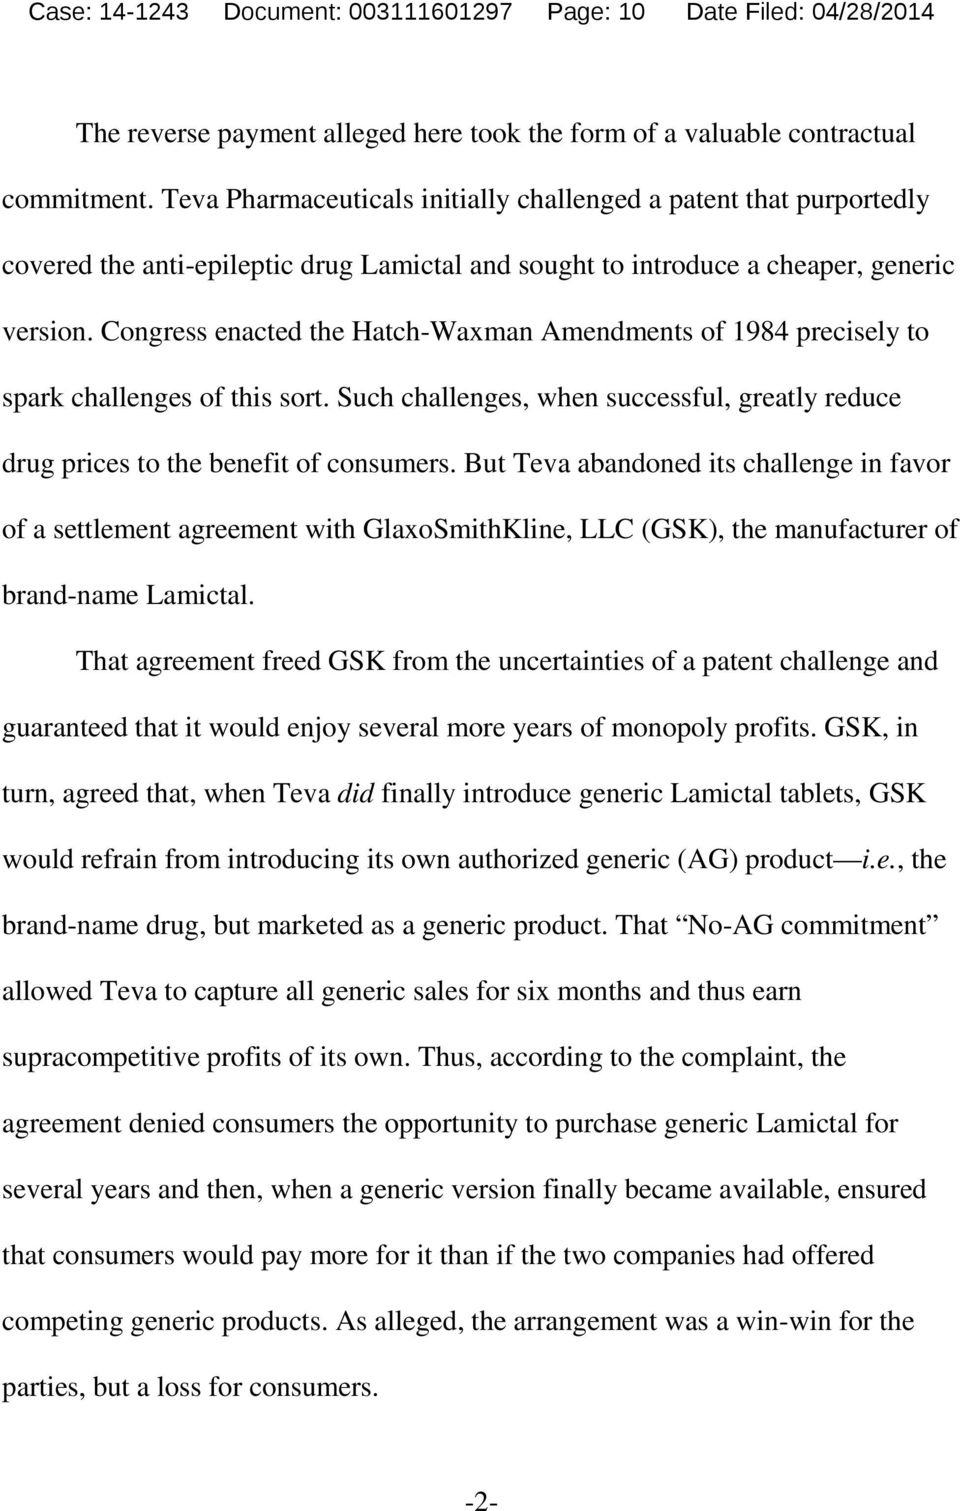 Congress enacted the Hatch-Waxman Amendments of 1984 precisely to spark challenges of this sort. Such challenges, when successful, greatly reduce drug prices to the benefit of consumers.